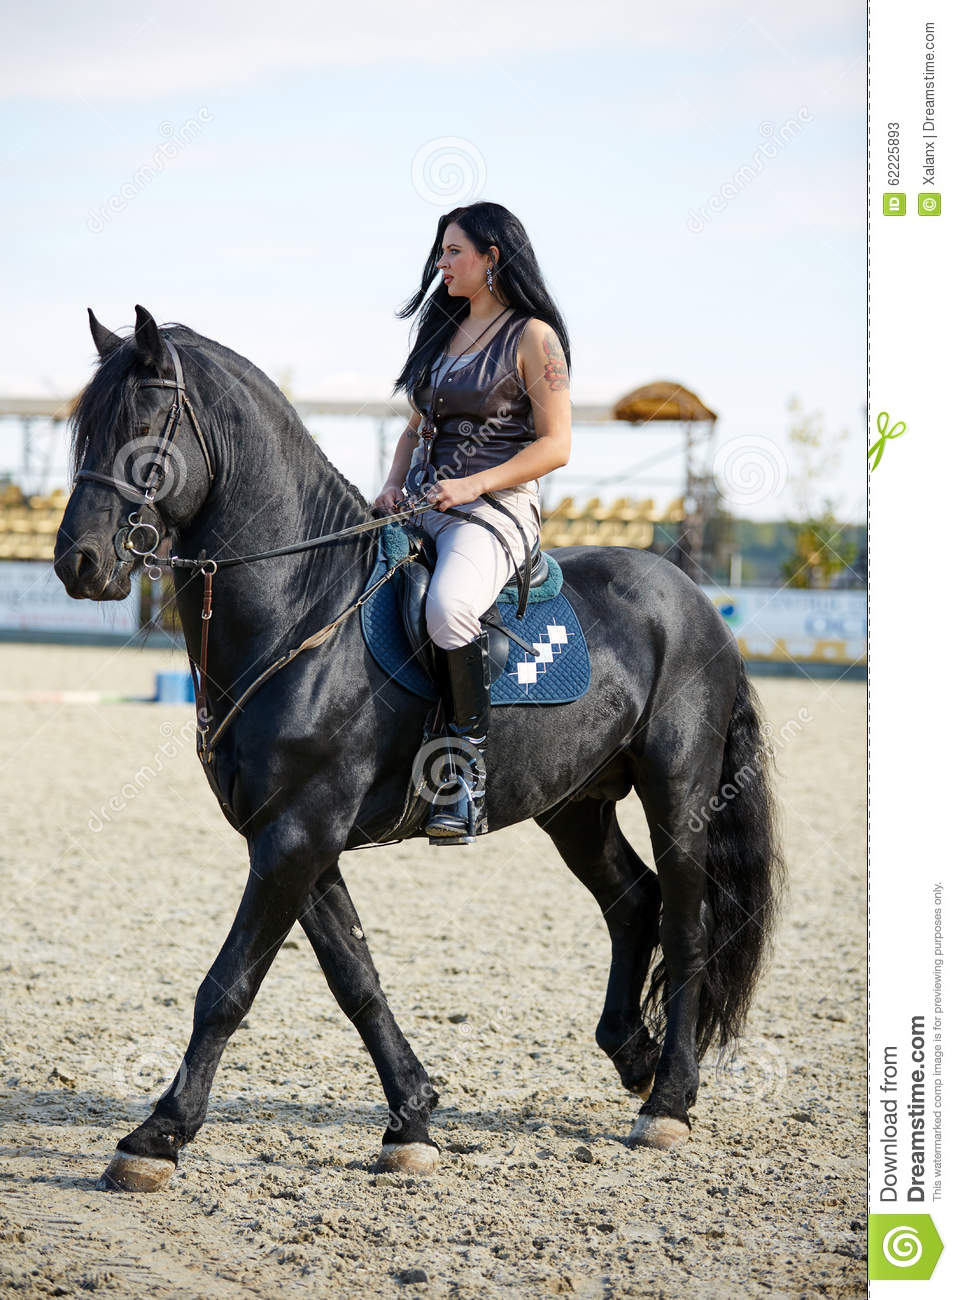 Girl Riding Horse Wallpaper Woman Astride A Horse Stock Image Image Of Lady Jockey